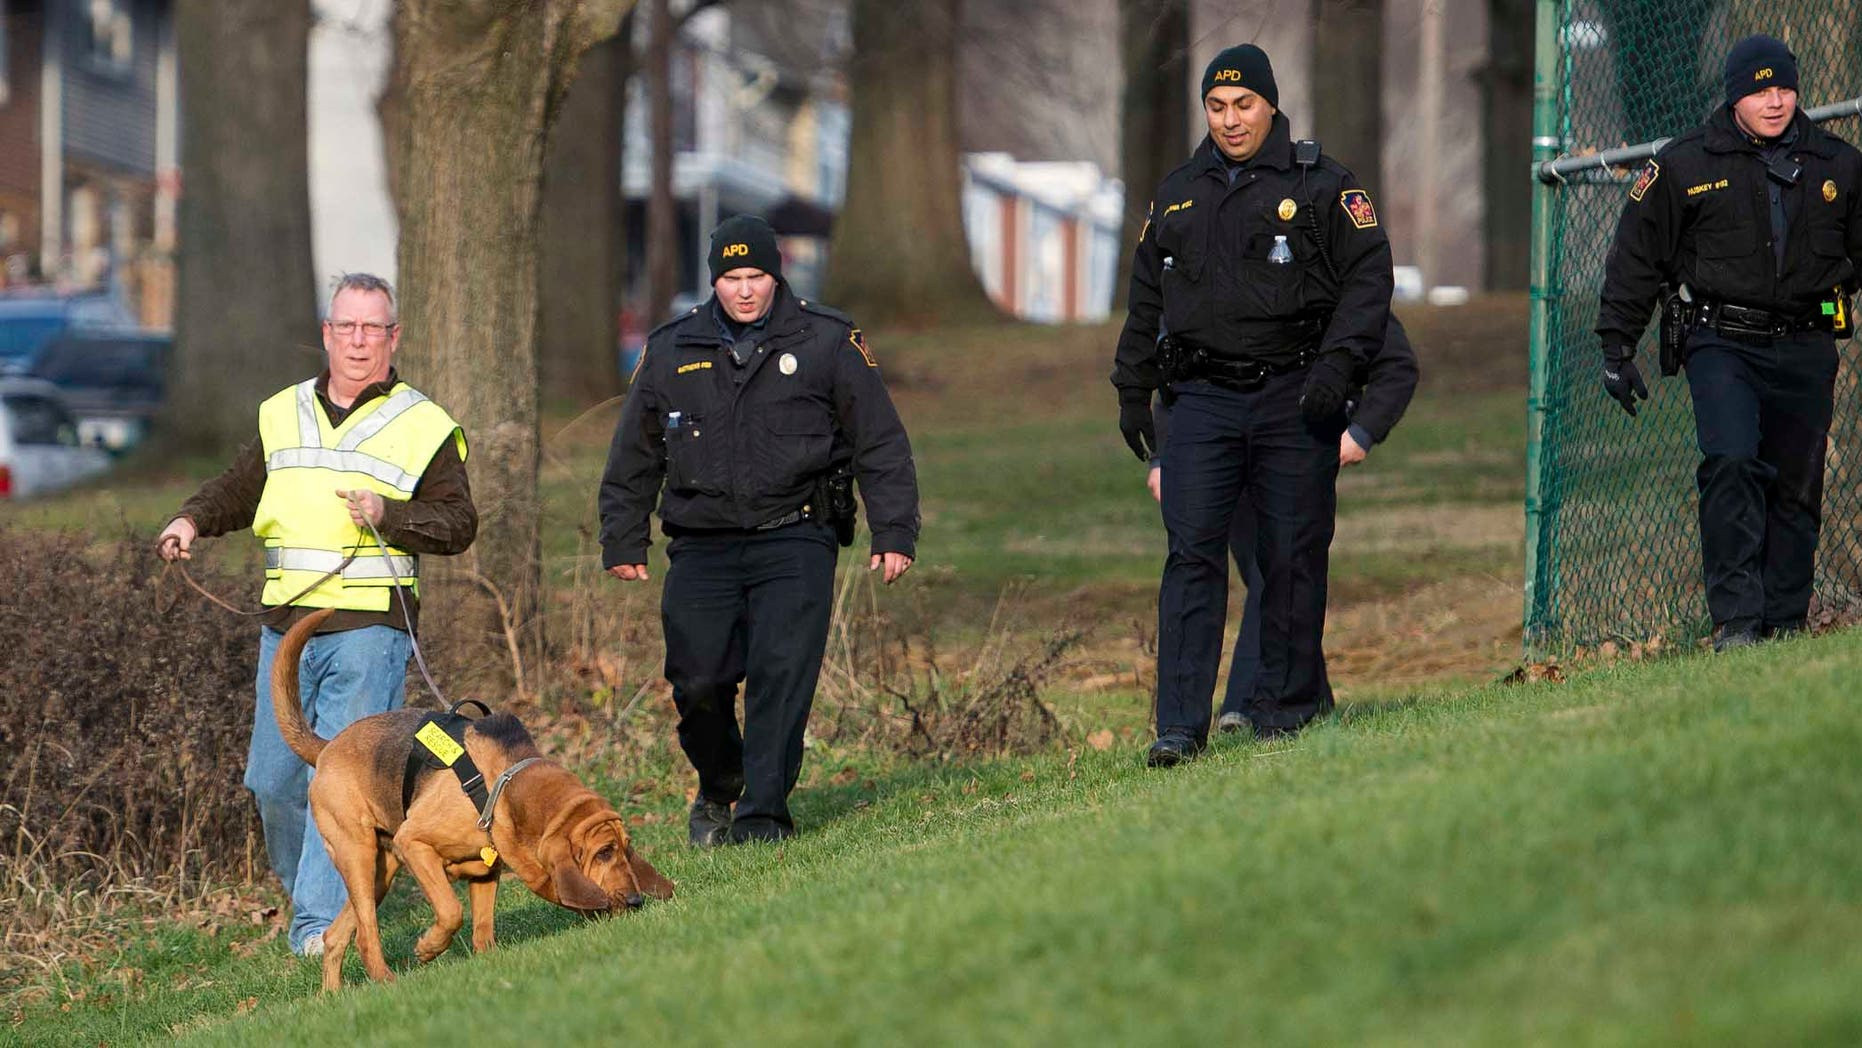 In this Friday, Jan. 1, 2016, photo, Allentown, Pa., police use a search and rescue dog in Keck Park as the search continues for Jayliel Vega Batista, a missing 5-year-old autistic boy who wandered off from a New Year's Eve party on Thursday night. (Chris Shipley/The Morning Call via AP) THE EXPRESS-TIMES OUT; WFMZ OUT; MANDATORY CREDIT